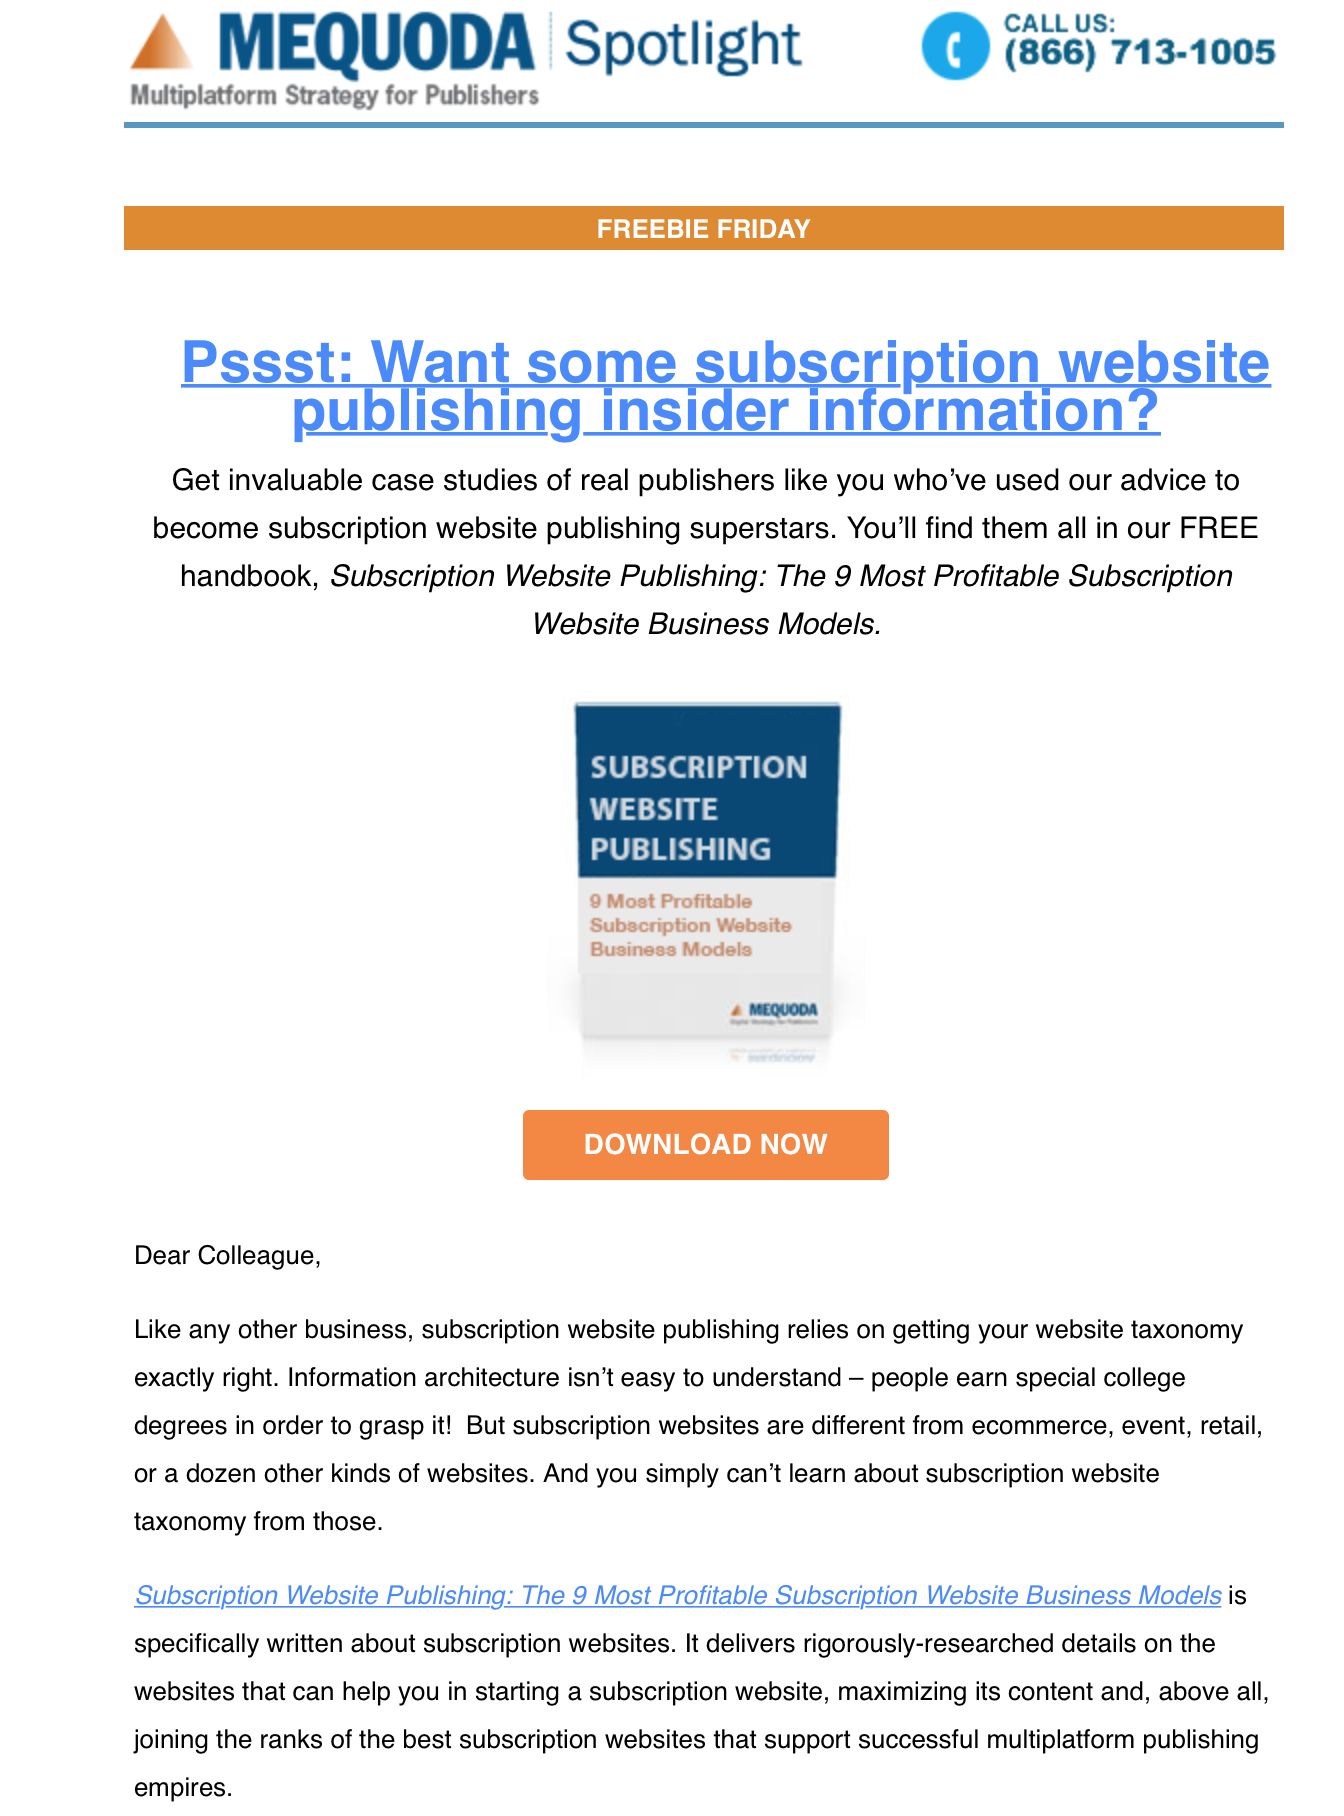 How to Promote a Magazine Through Email Spotlights